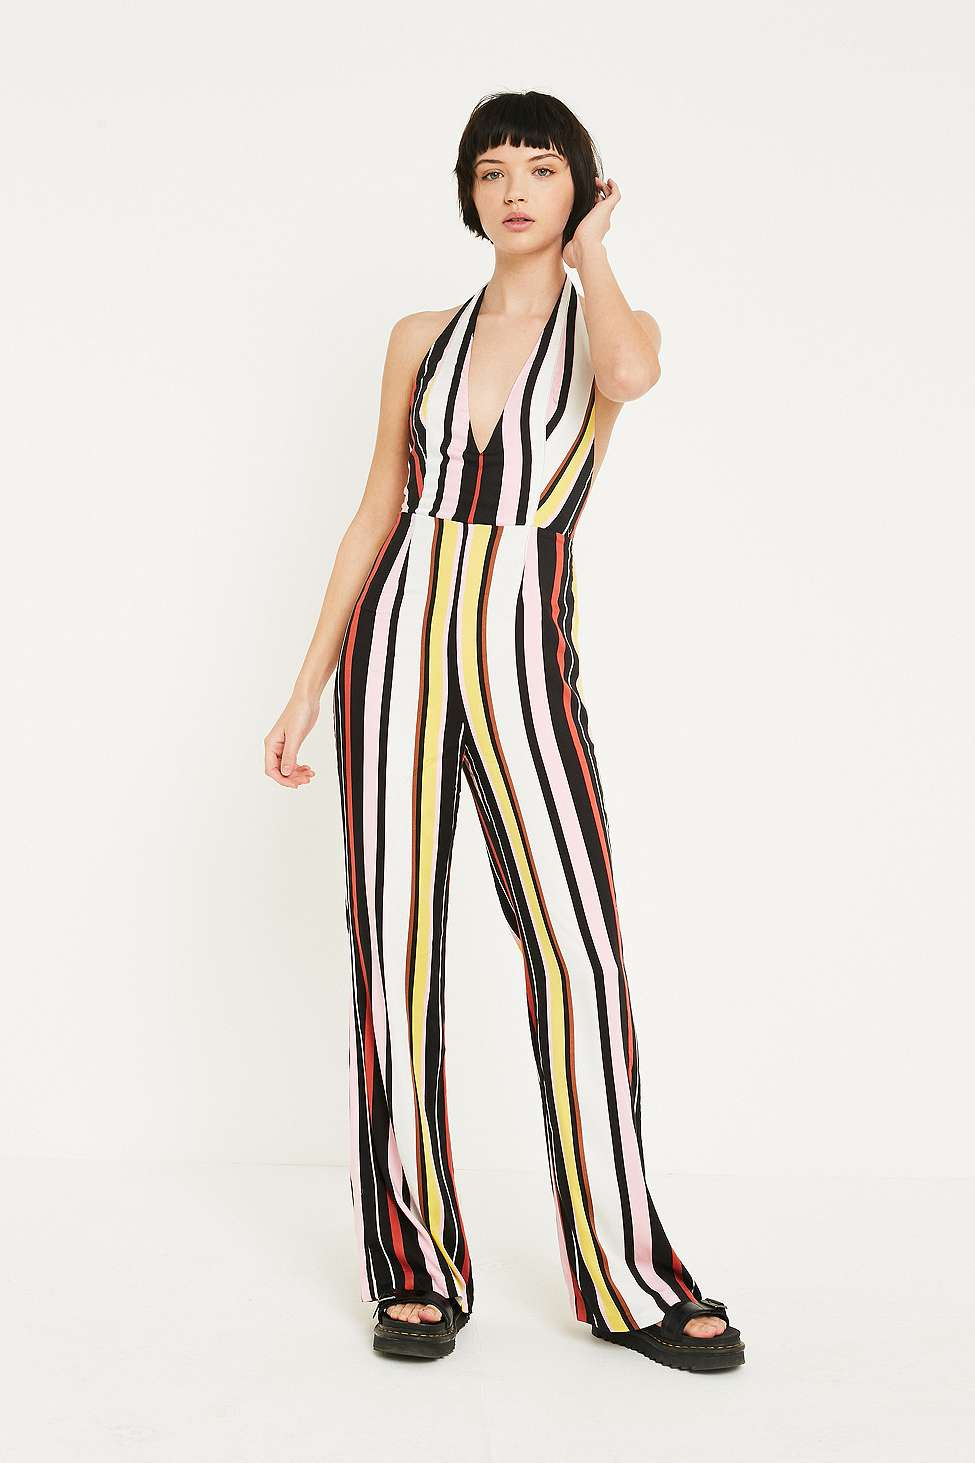 Uo Shiloh Black White Plunging Flare Jumpsuit Urban Outfitters Fr